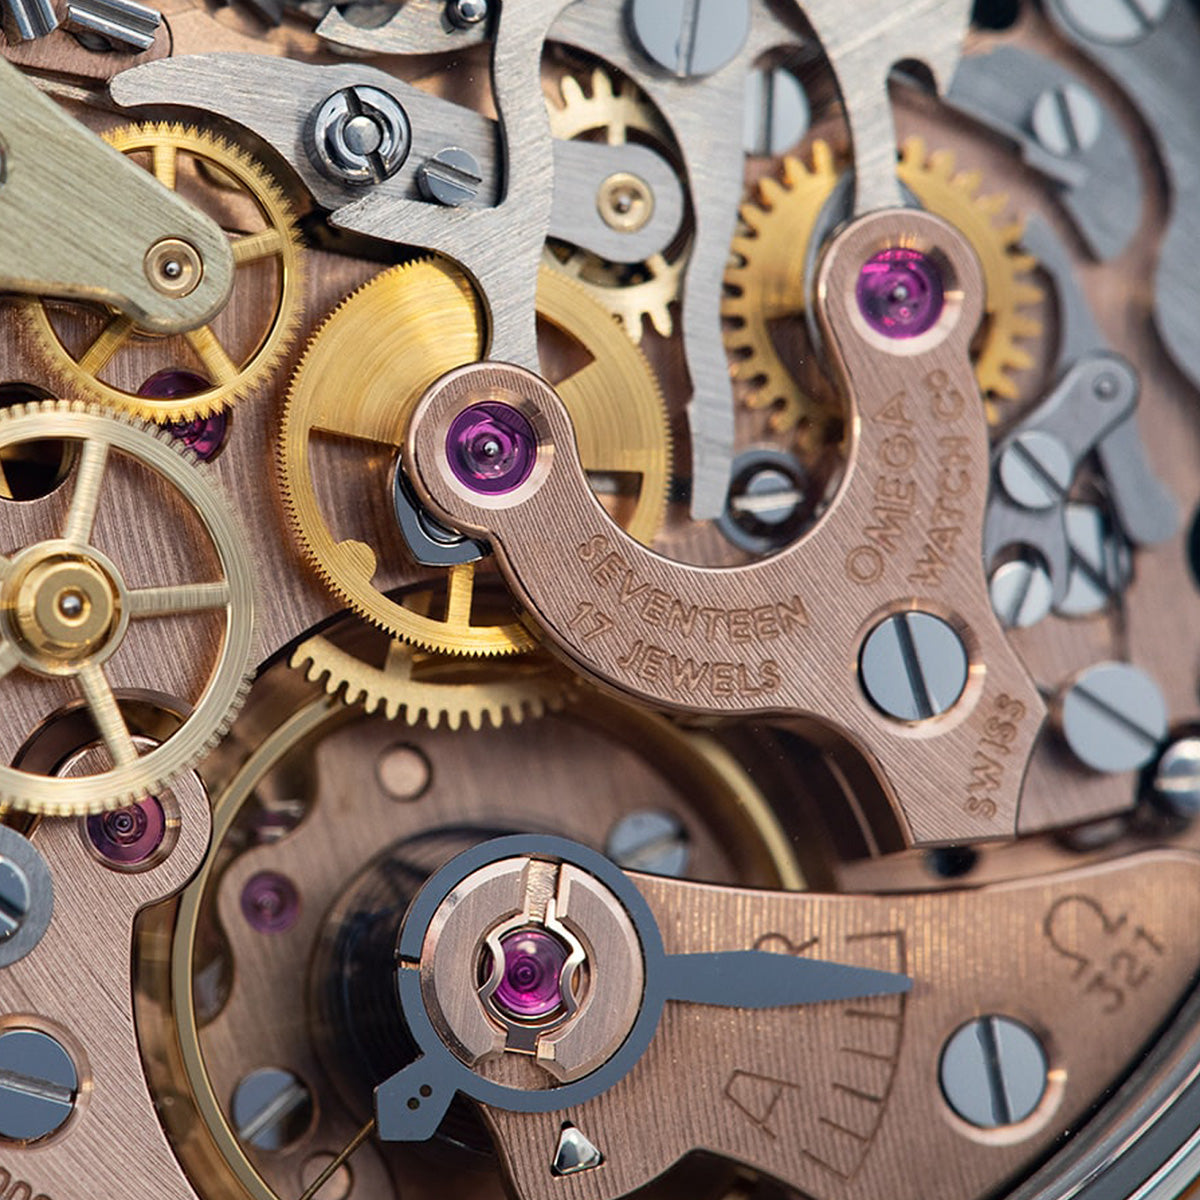 Omega calibers – The super-powers behind the Omega watch faces Part 2